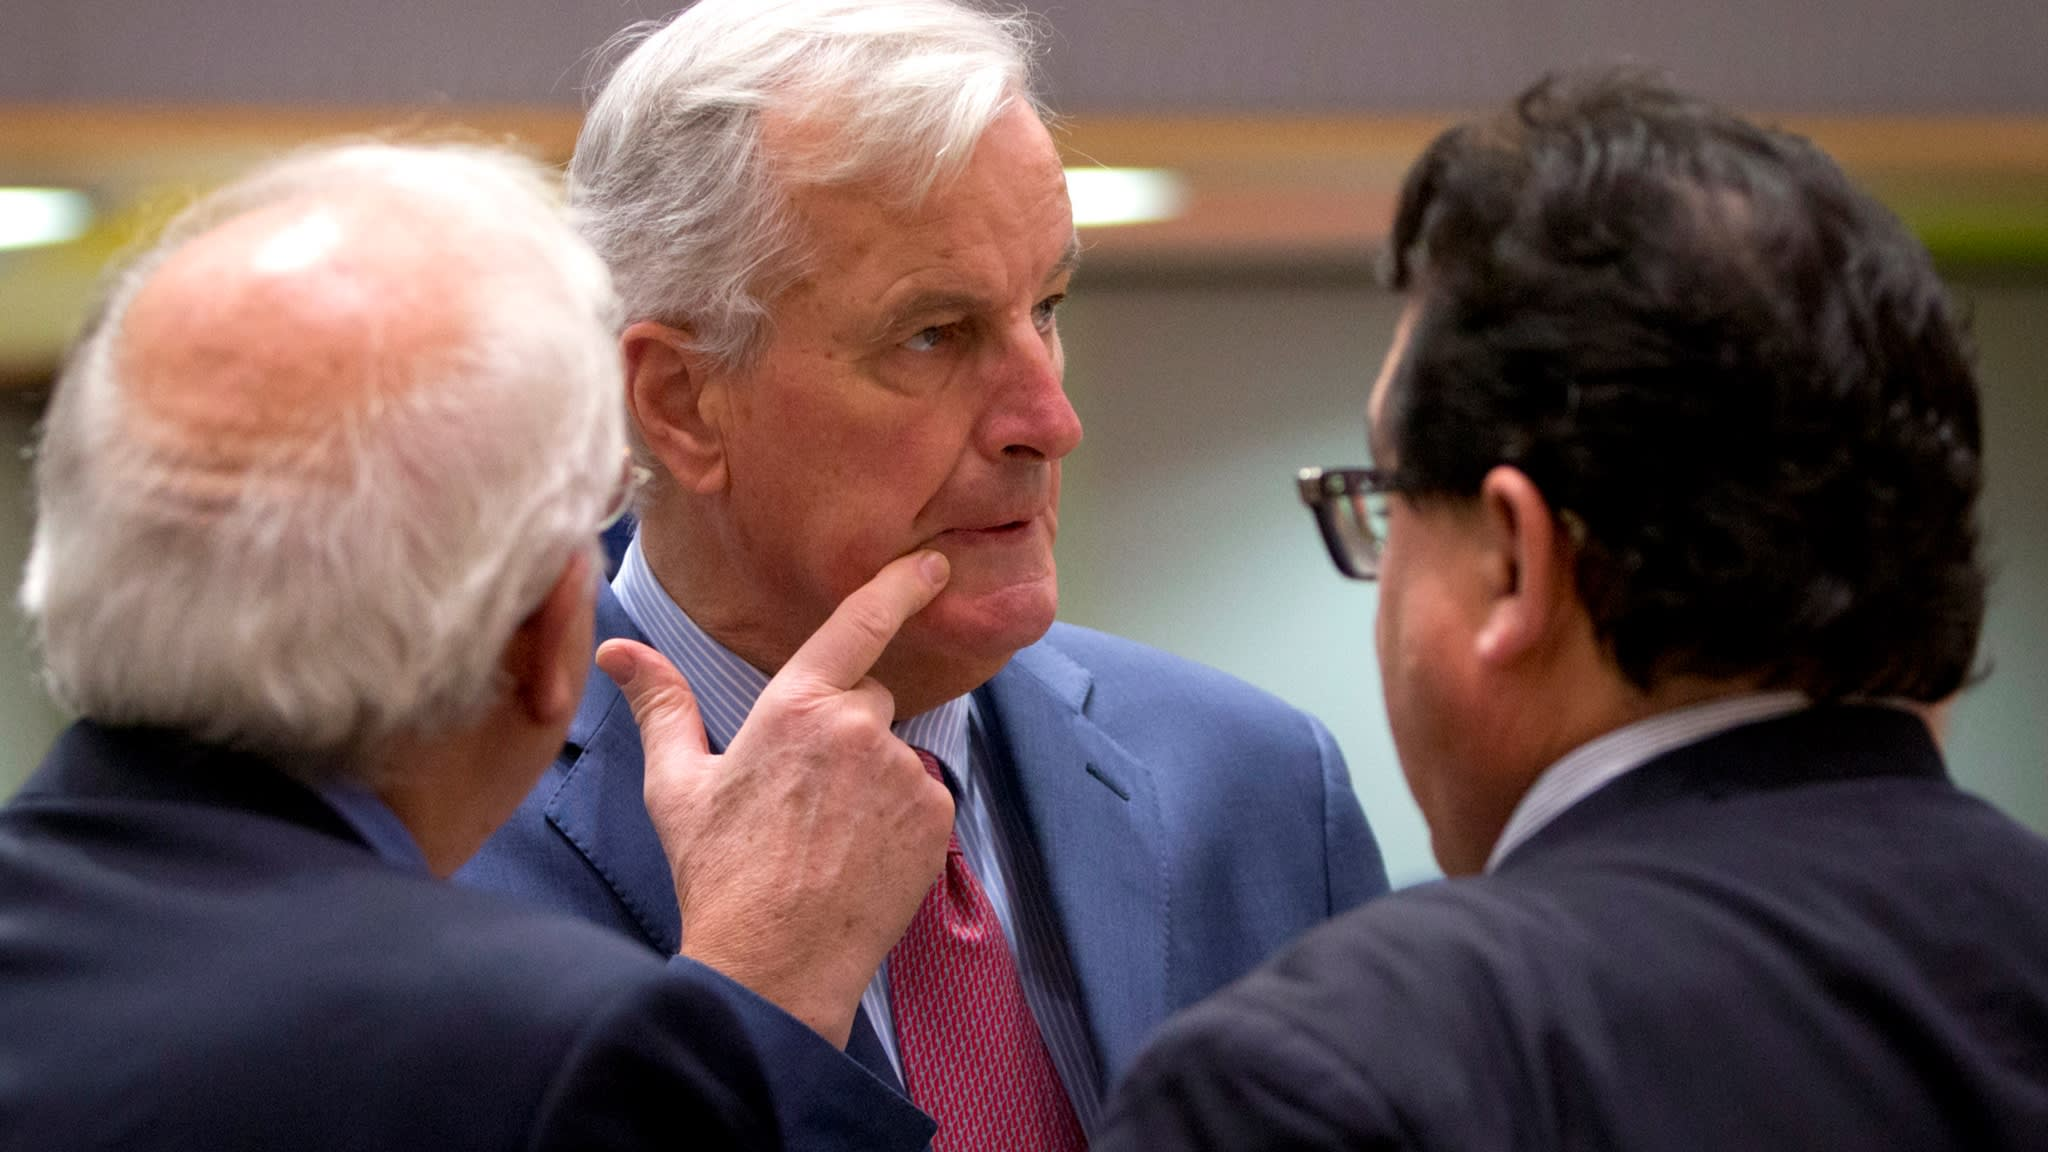 EU ministers push Barnier for demands on future relationship | Financial Times